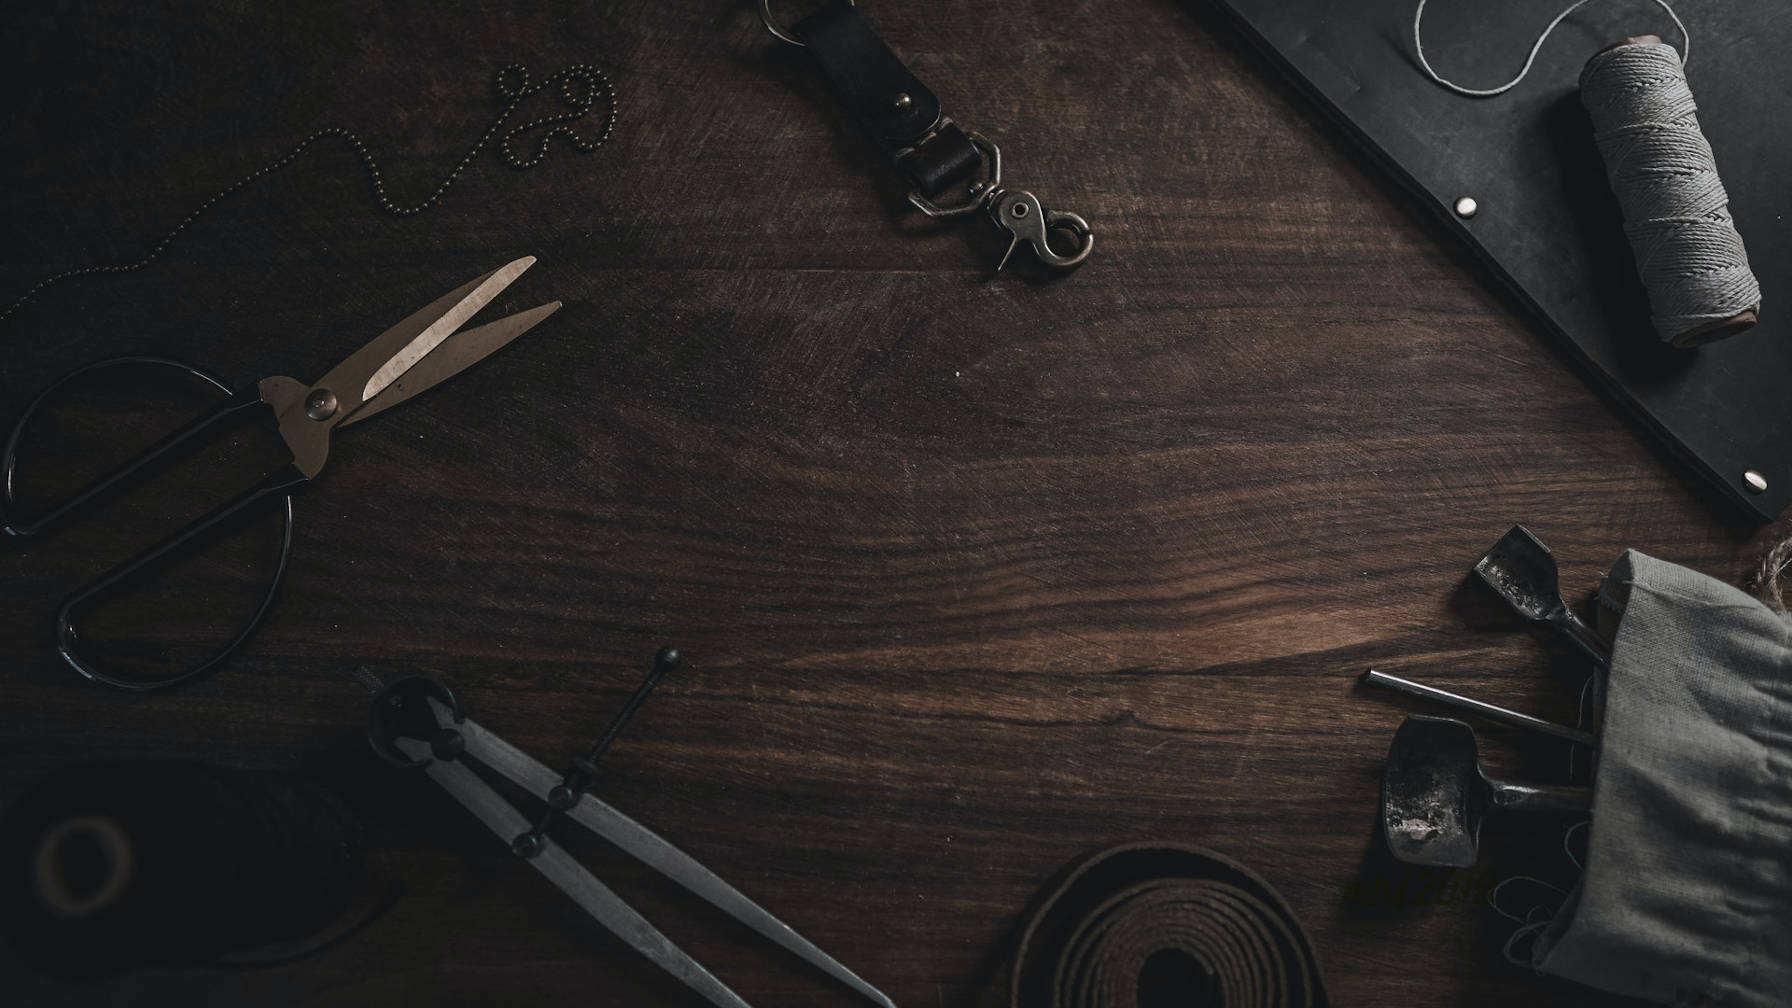 Decorative image of a wooden desk with various tools lying on it.